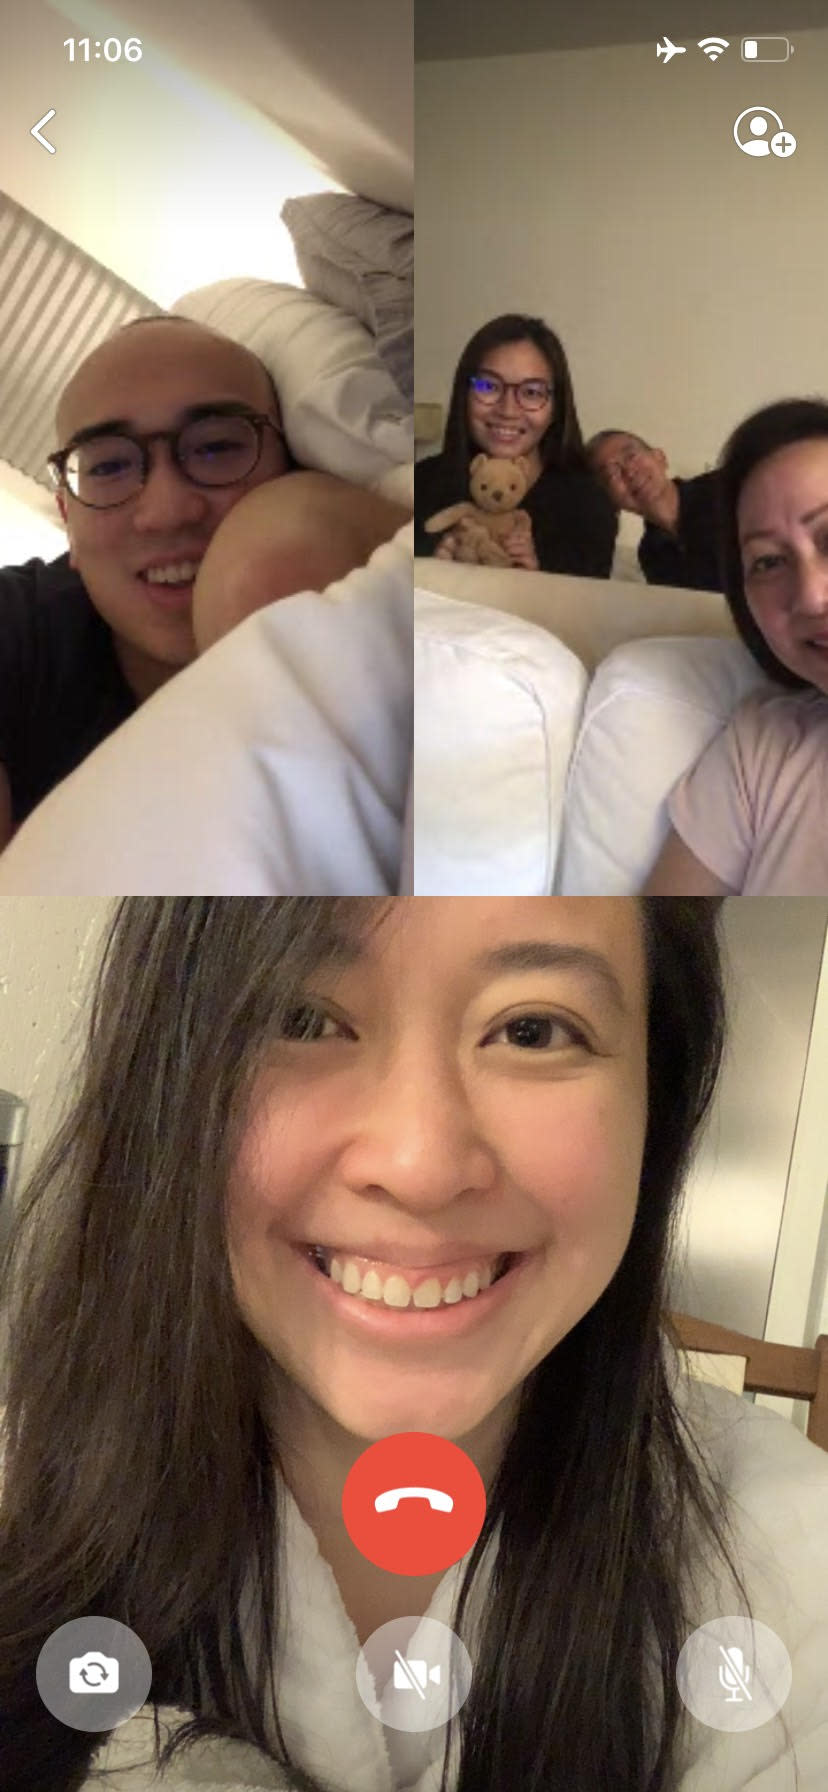 Boston-based Jiezhen Wu on a video chat with her brother in New York City and her parents and sister in Singapore. PHOTO: Jiezhen Wu